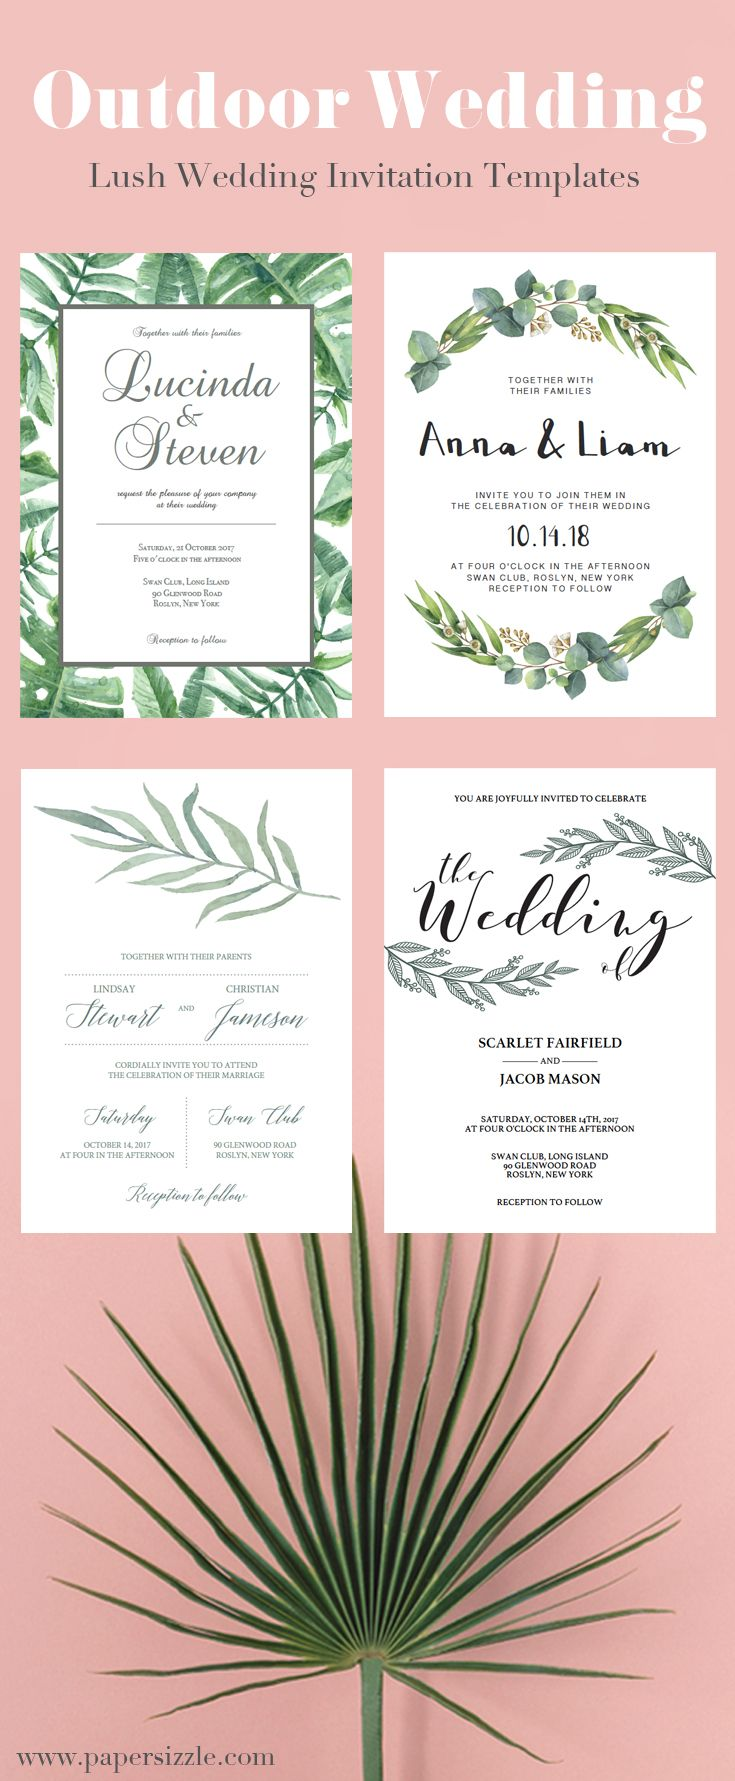 Lush greenery wedding invitations by Papersizzle. The invitation ...